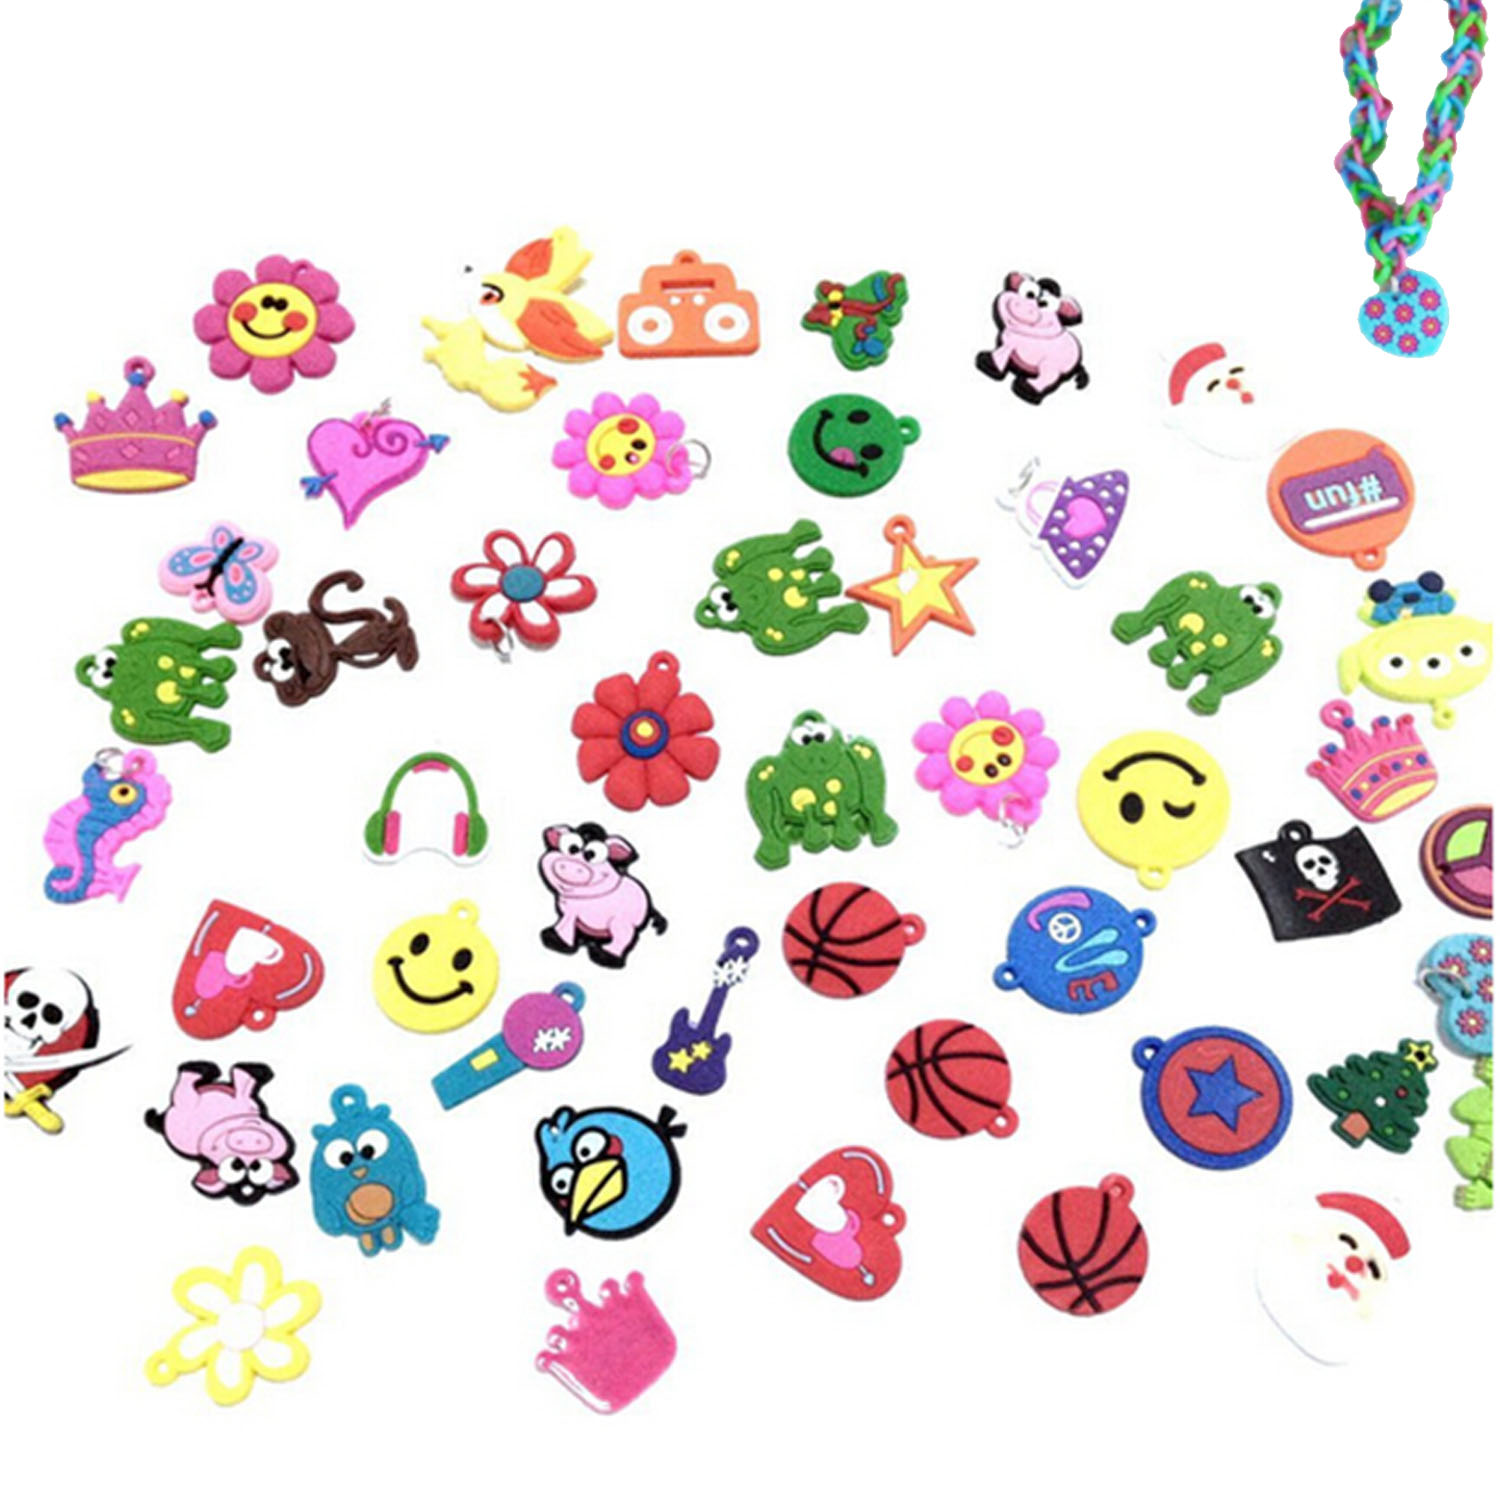 30PCS Kids Girls Charms Pendants Beads Toy For DIY Colorful Loom Rubber Bands Bracelets Jewelry Making Accessories Random Style